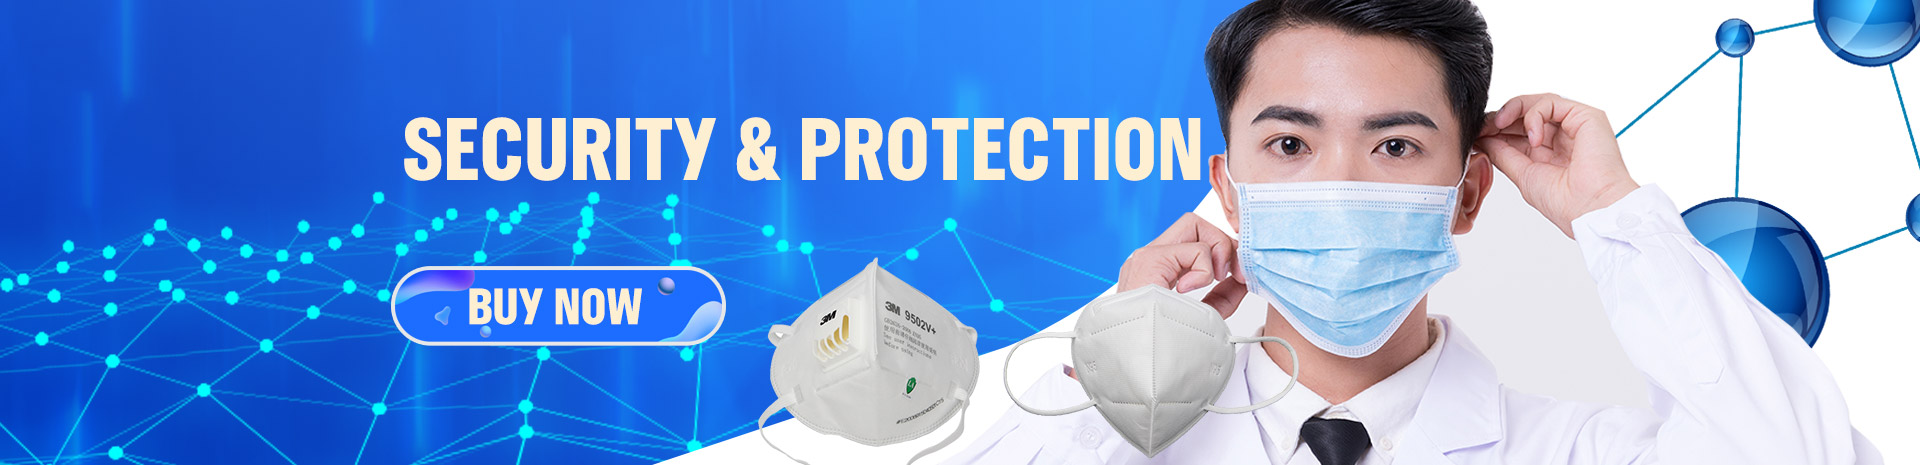 Security and Protection Products